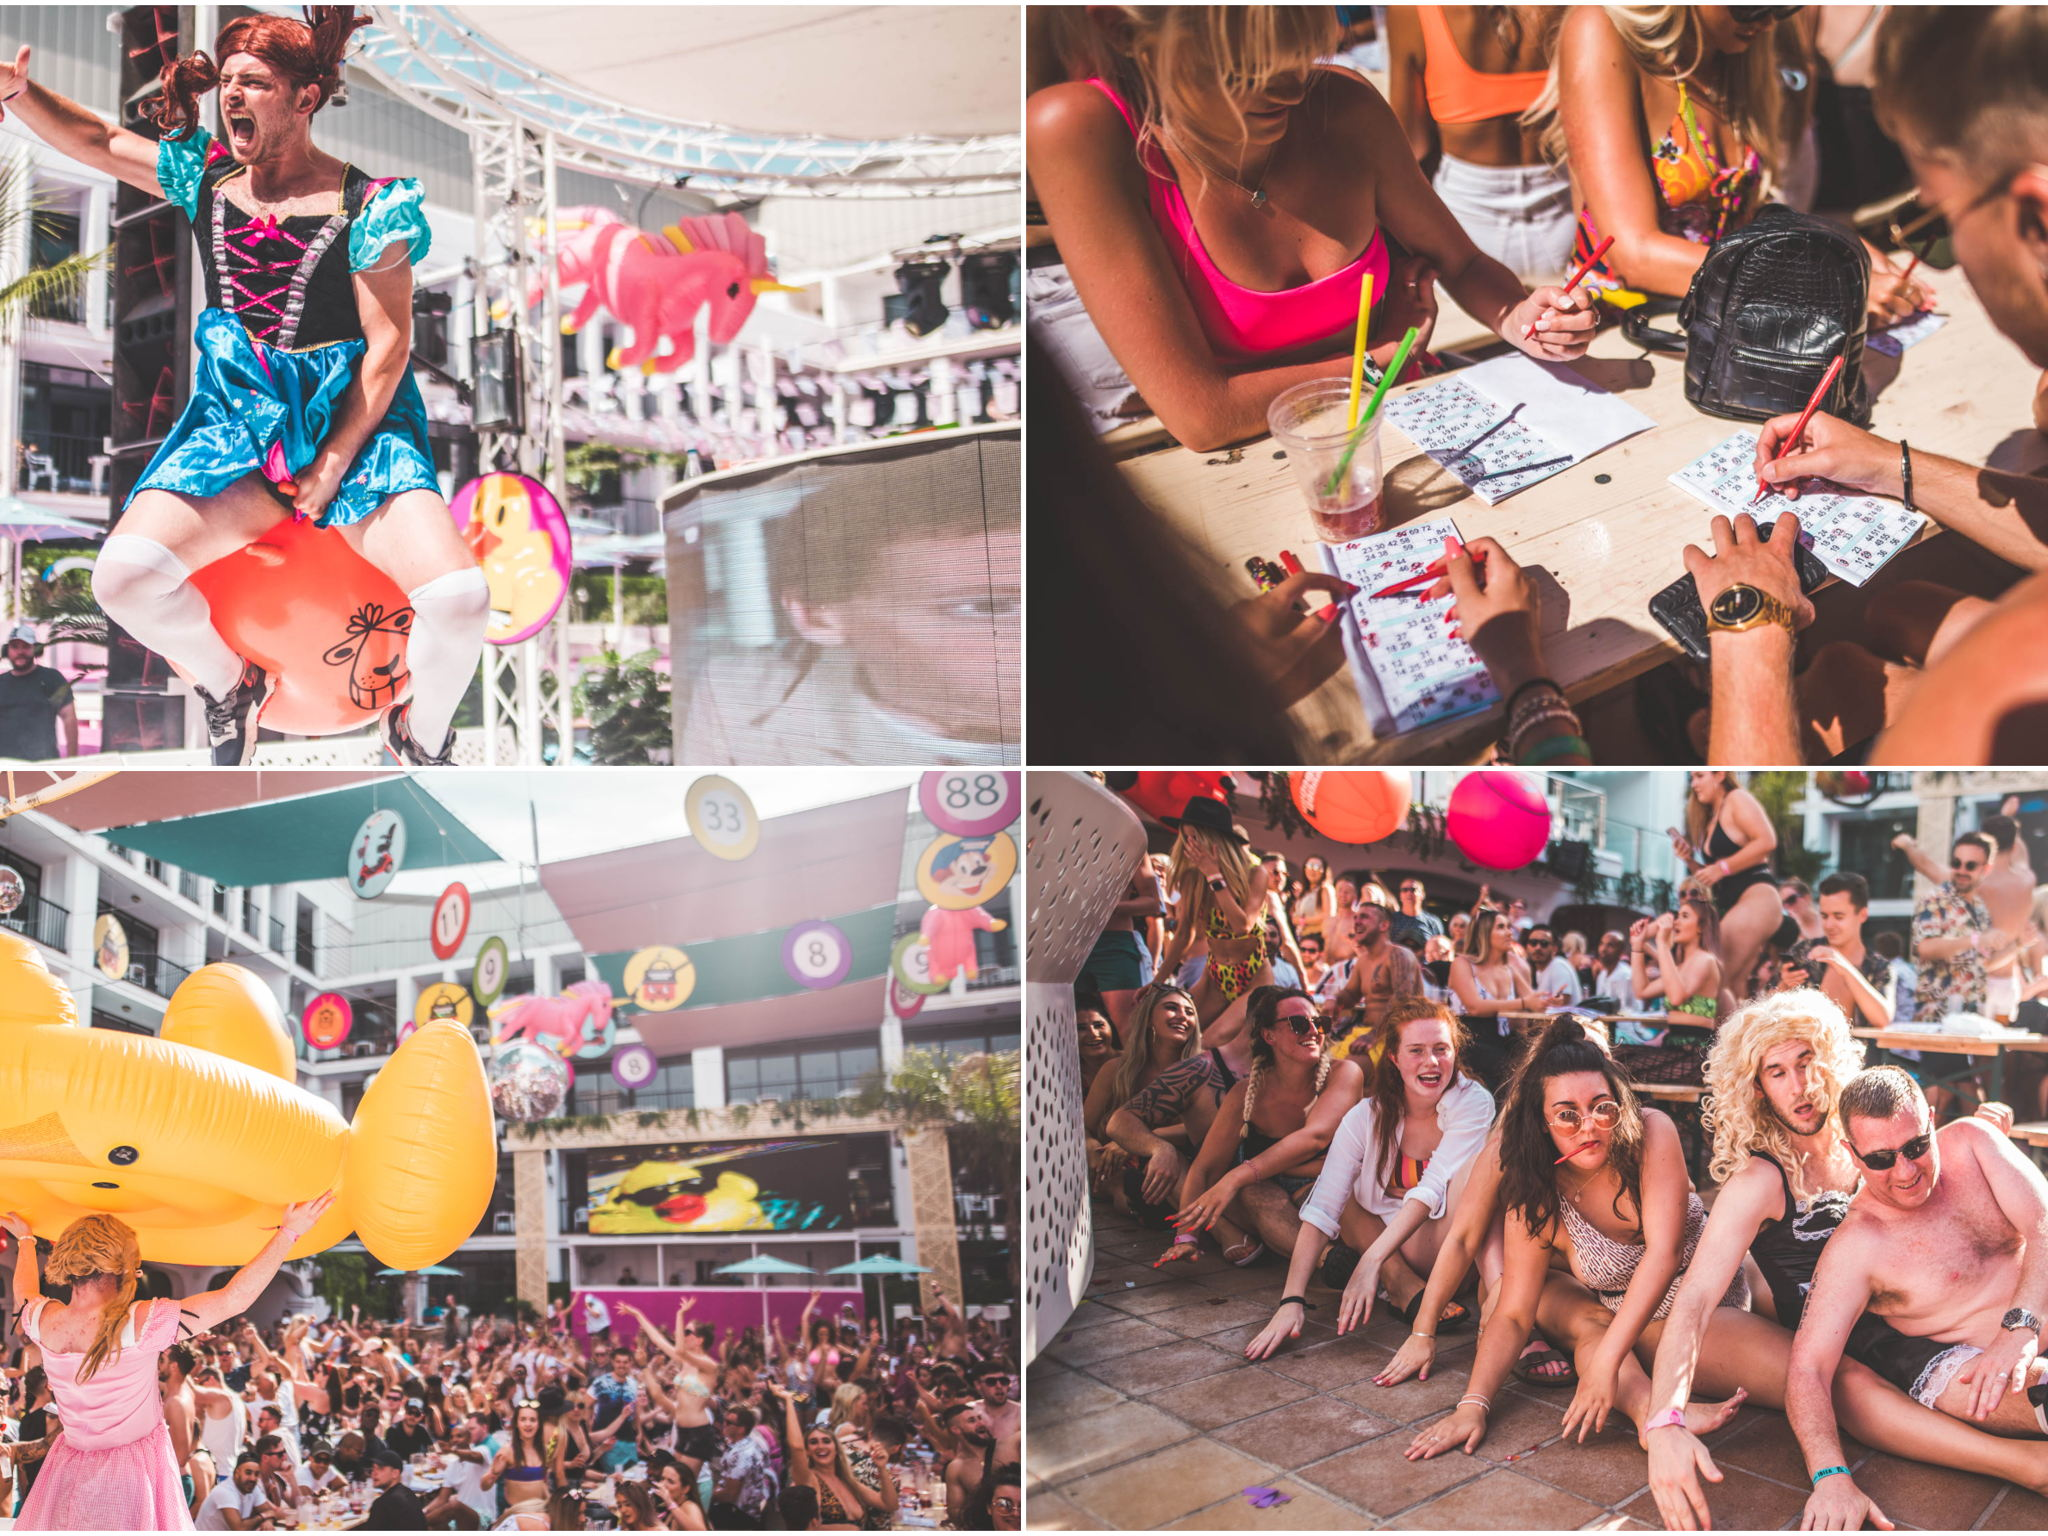 Image gallery Bongos Bingos pool party Ibiza rocks